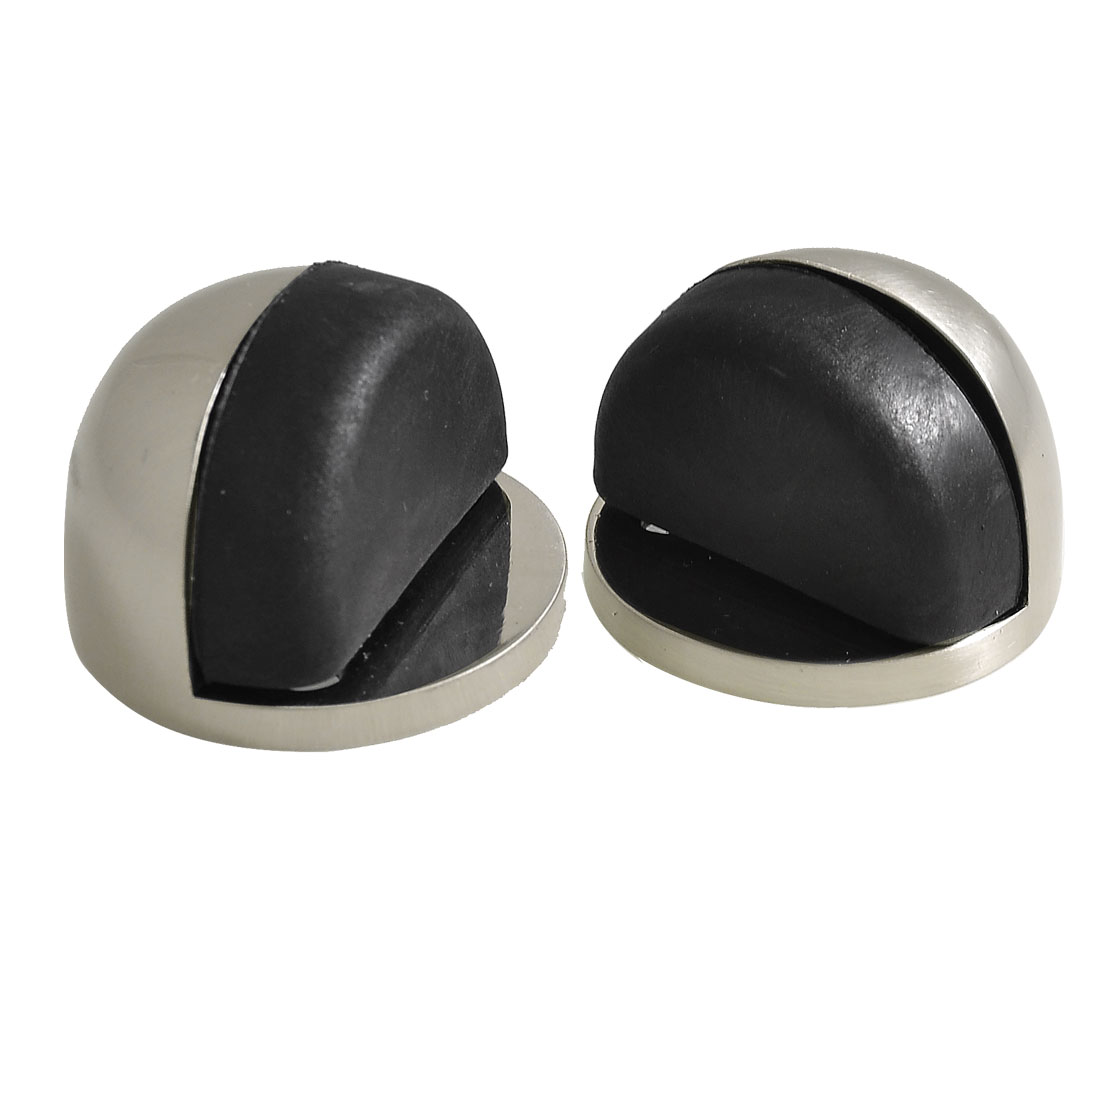 Stainless Steel Plastic Round Base Floor Mount Door Stoppers 2 Pcs